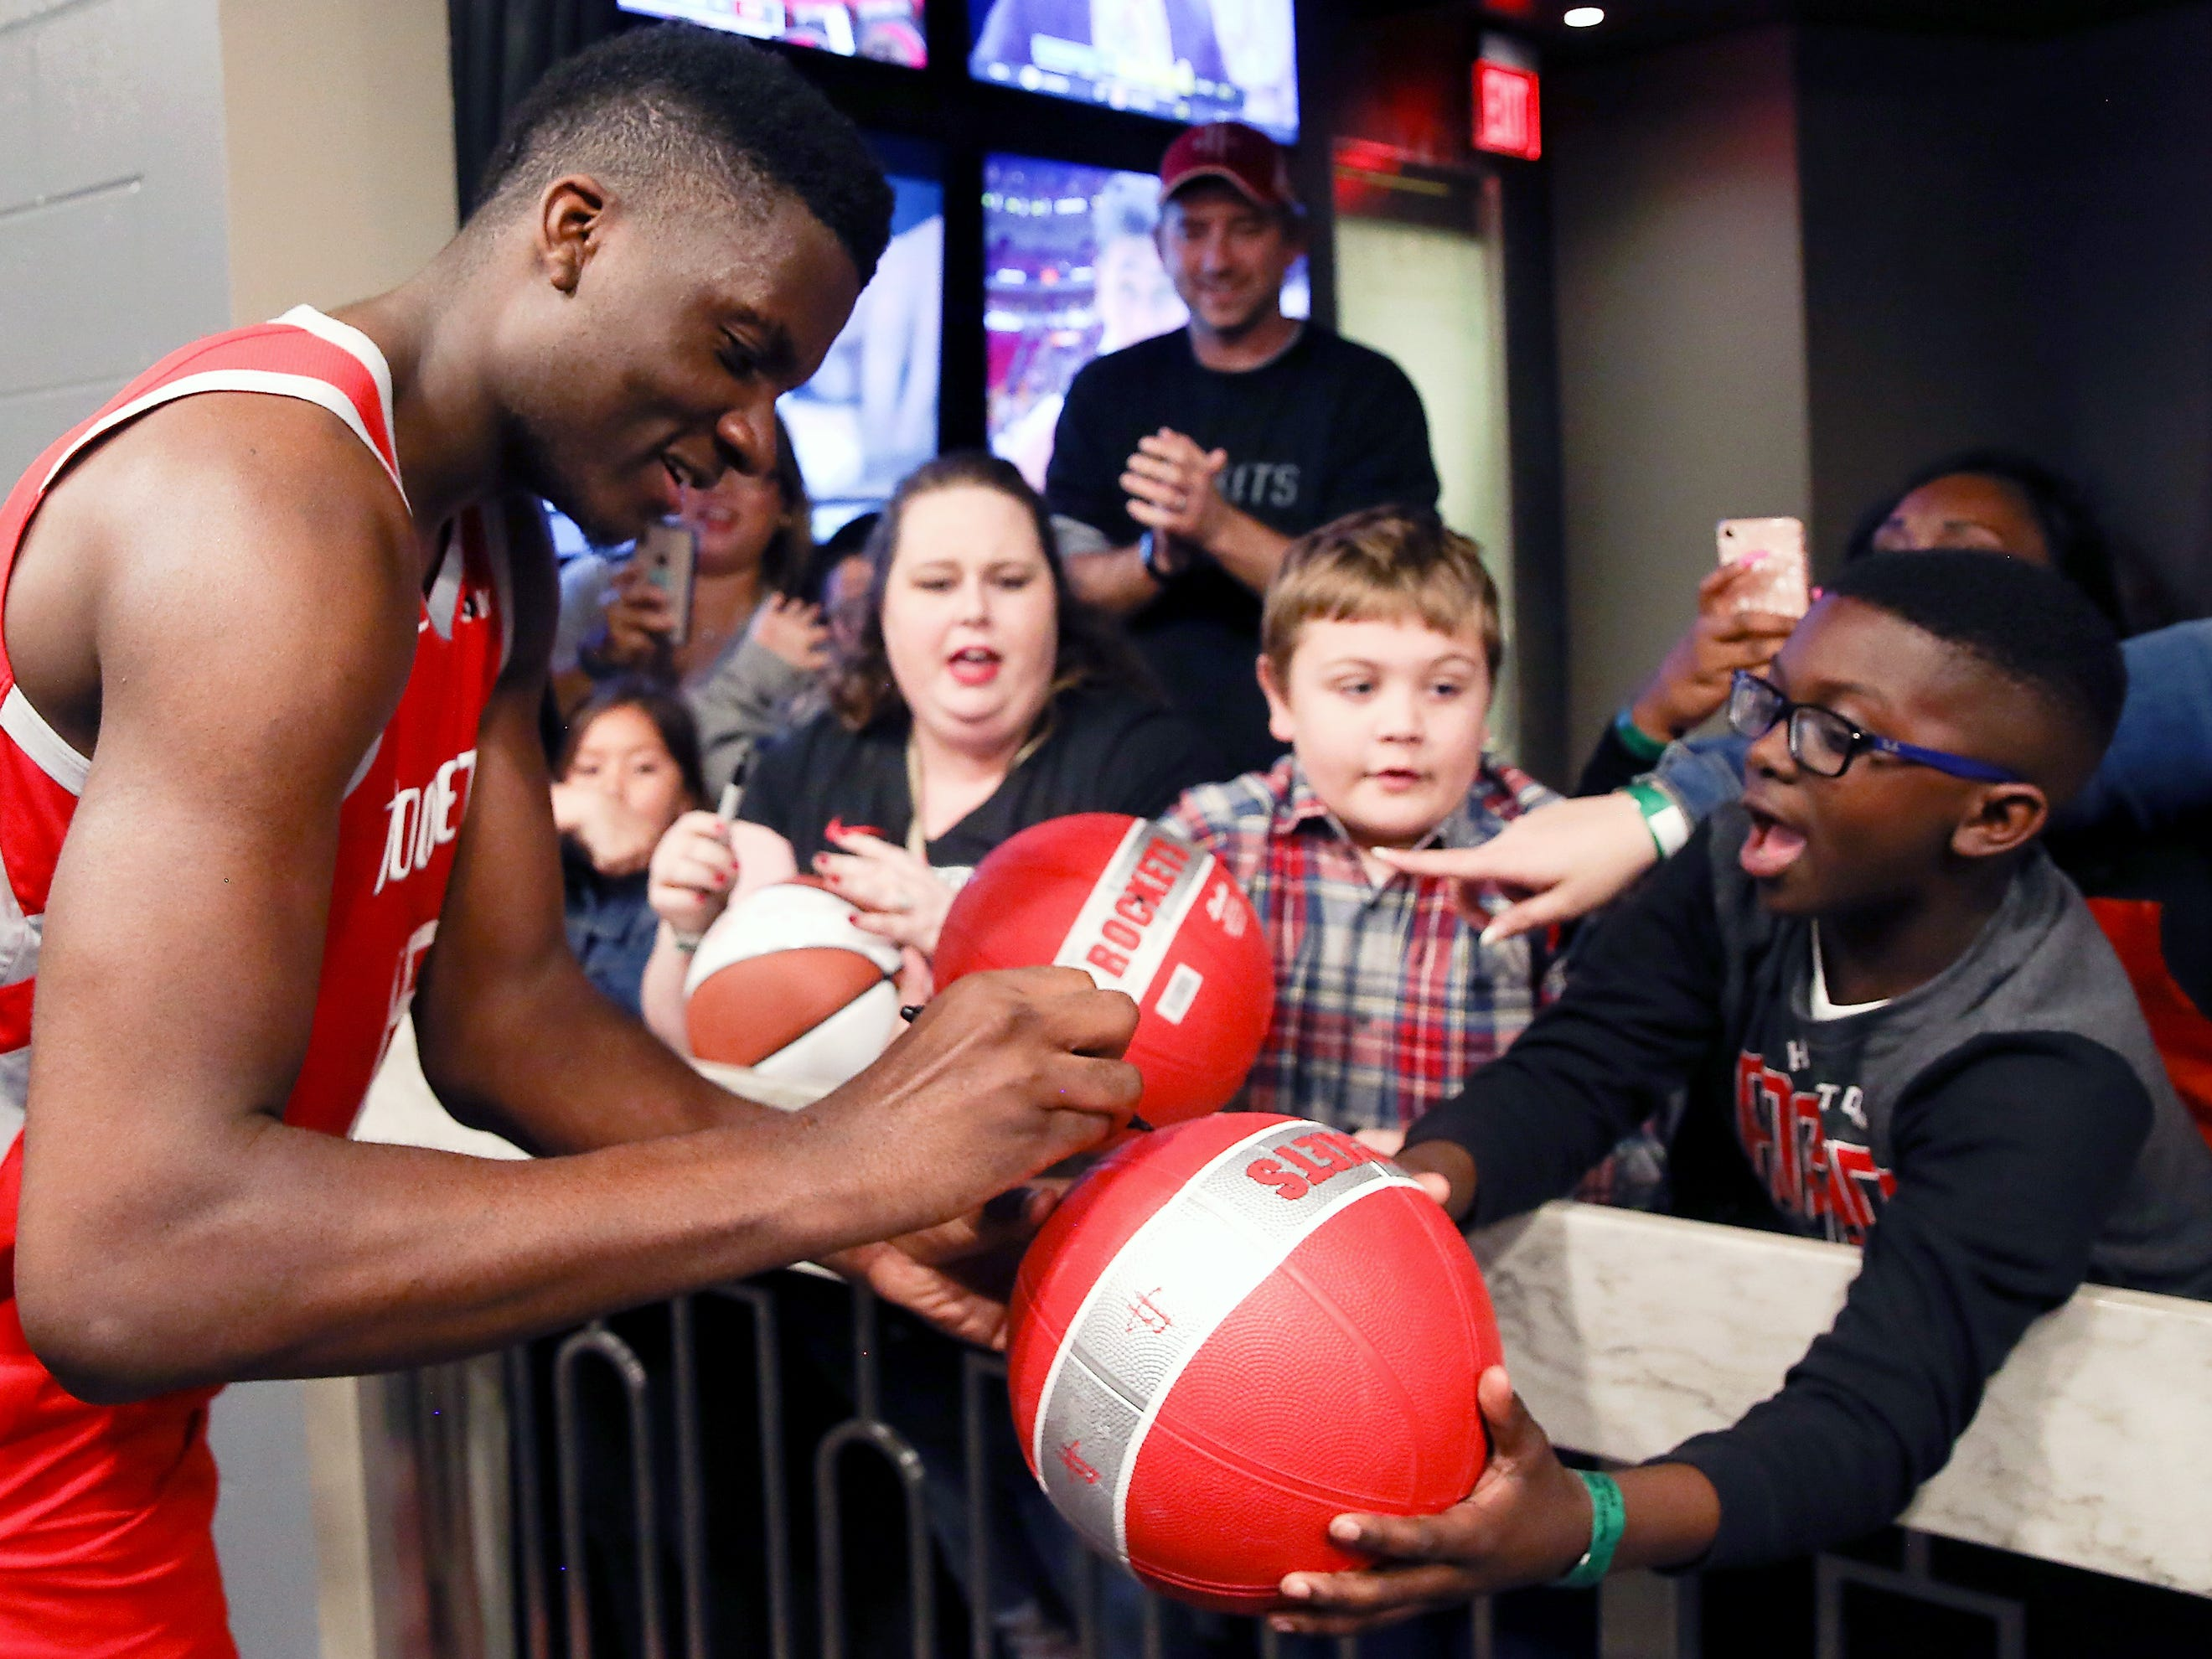 March 15: Rockets center Clint Capela stops to sign some autographs after defeating the Suns at Toyota Center. in Houston.